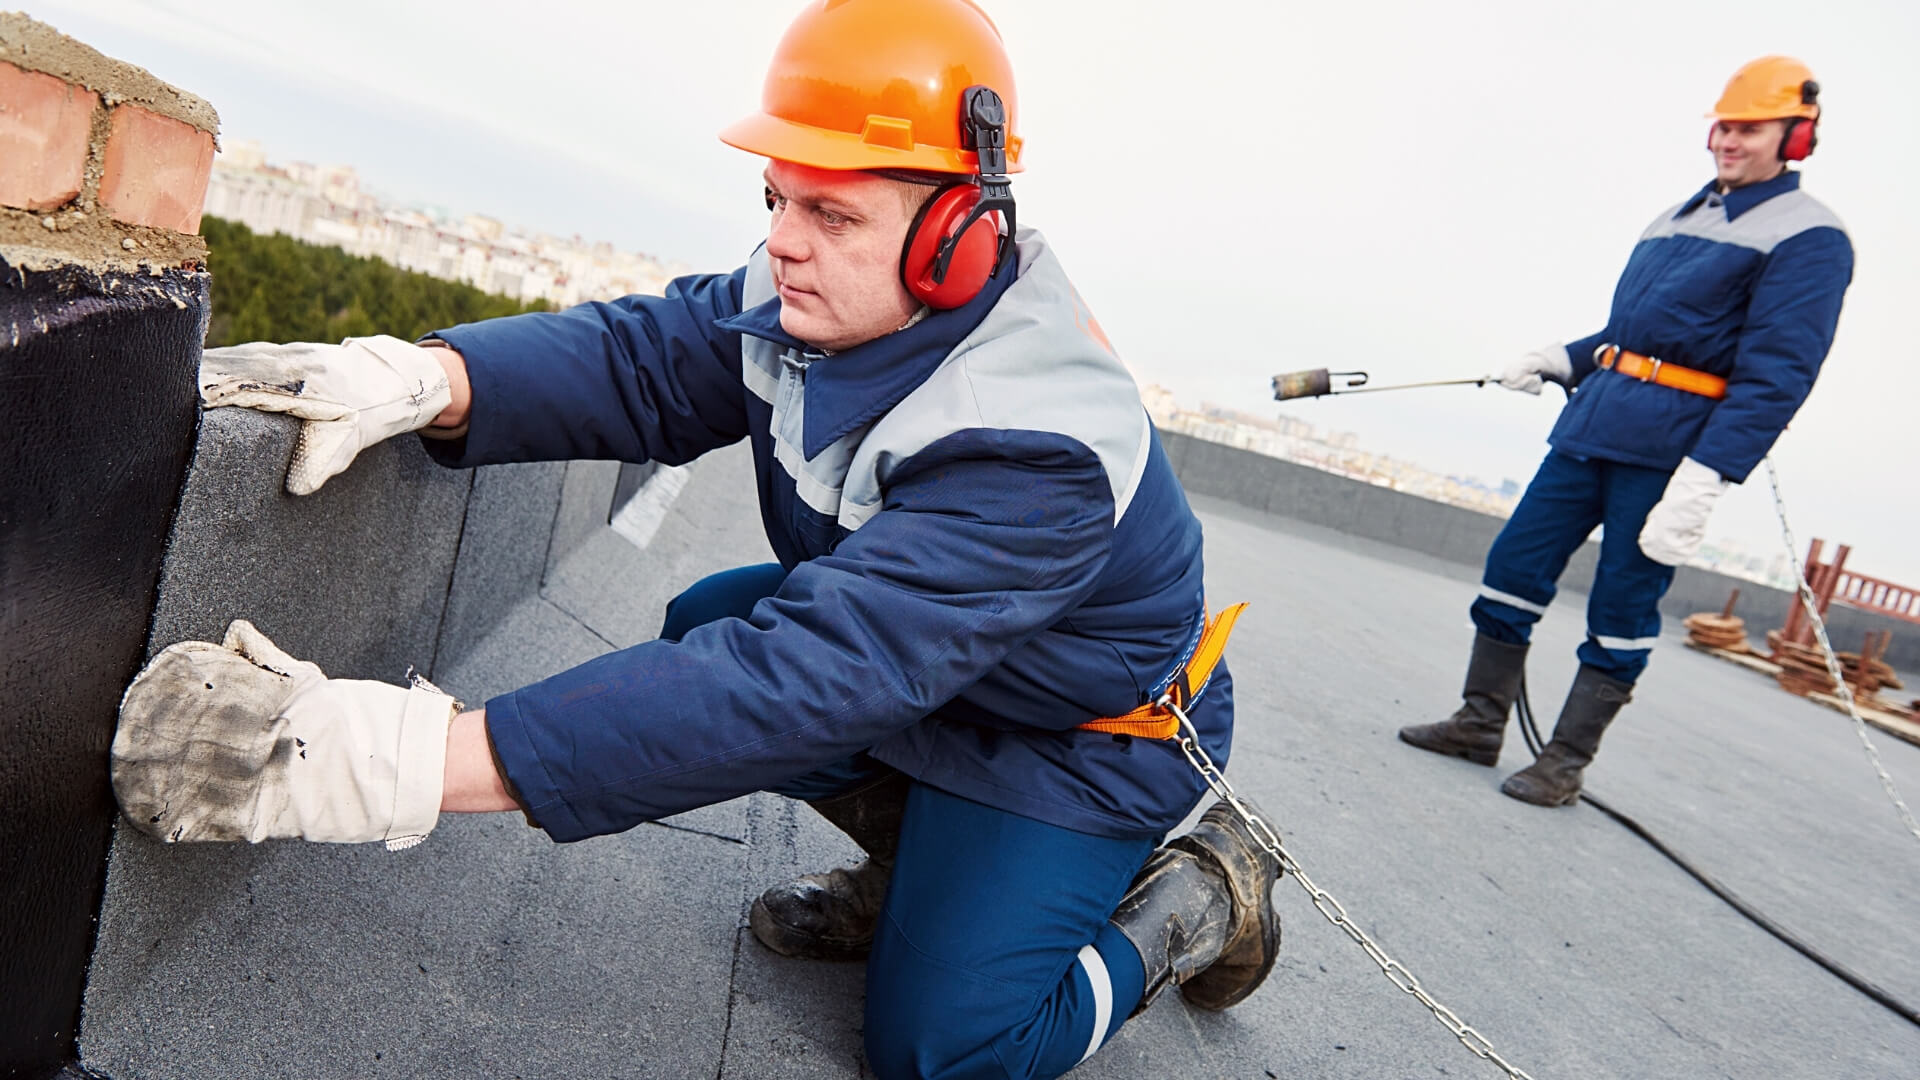 Commercial Roofing Team Image - Salinas - Tectum Salinas Roofing